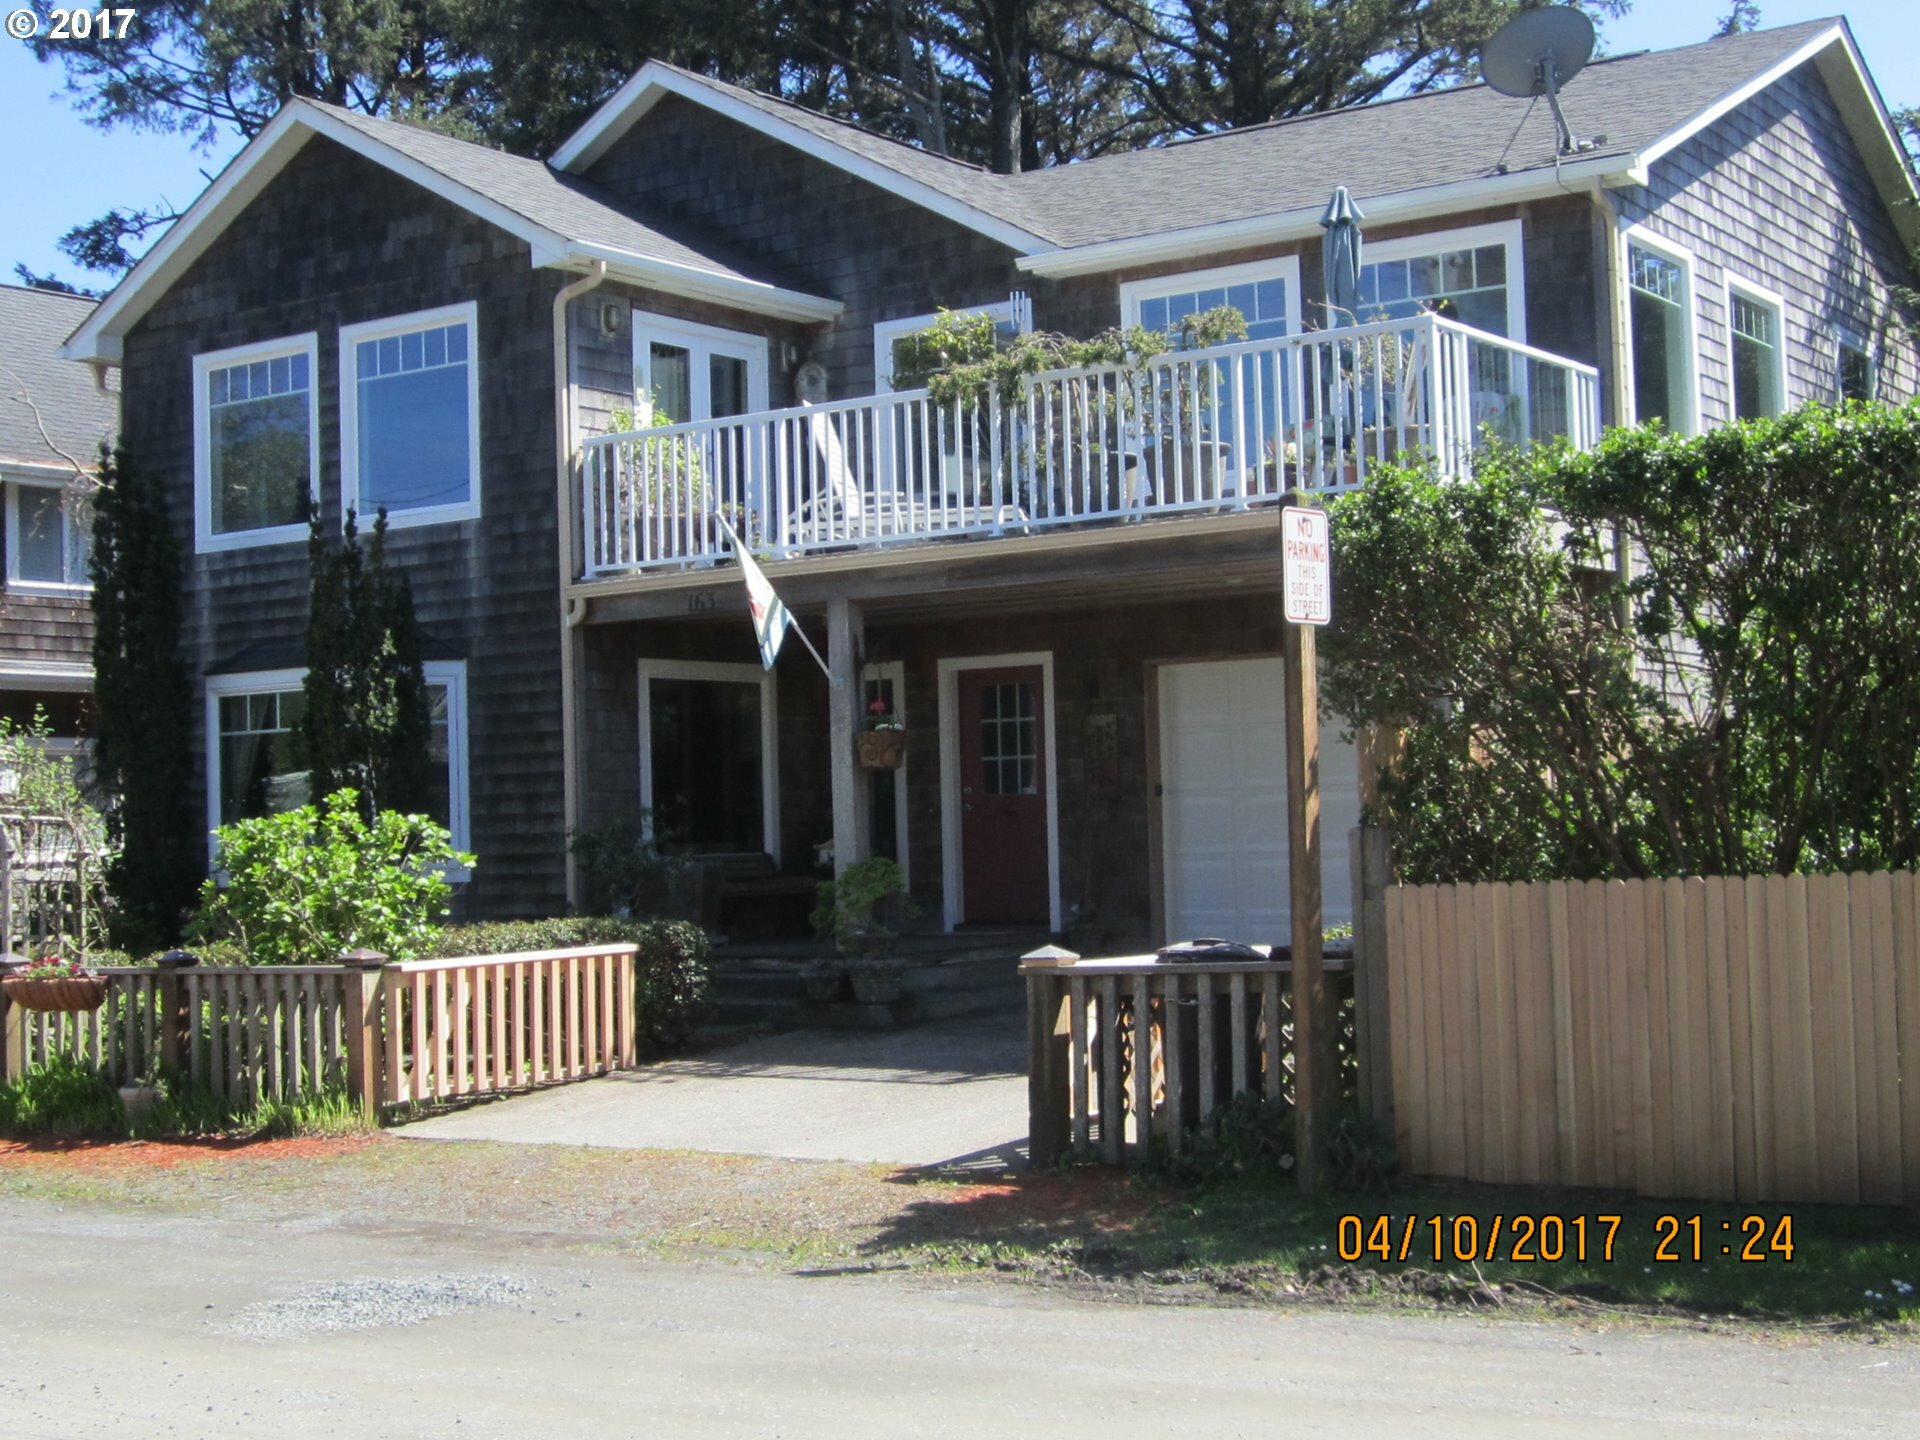 163 W Washington St, Cannon Beach, OR - USA (photo 1)